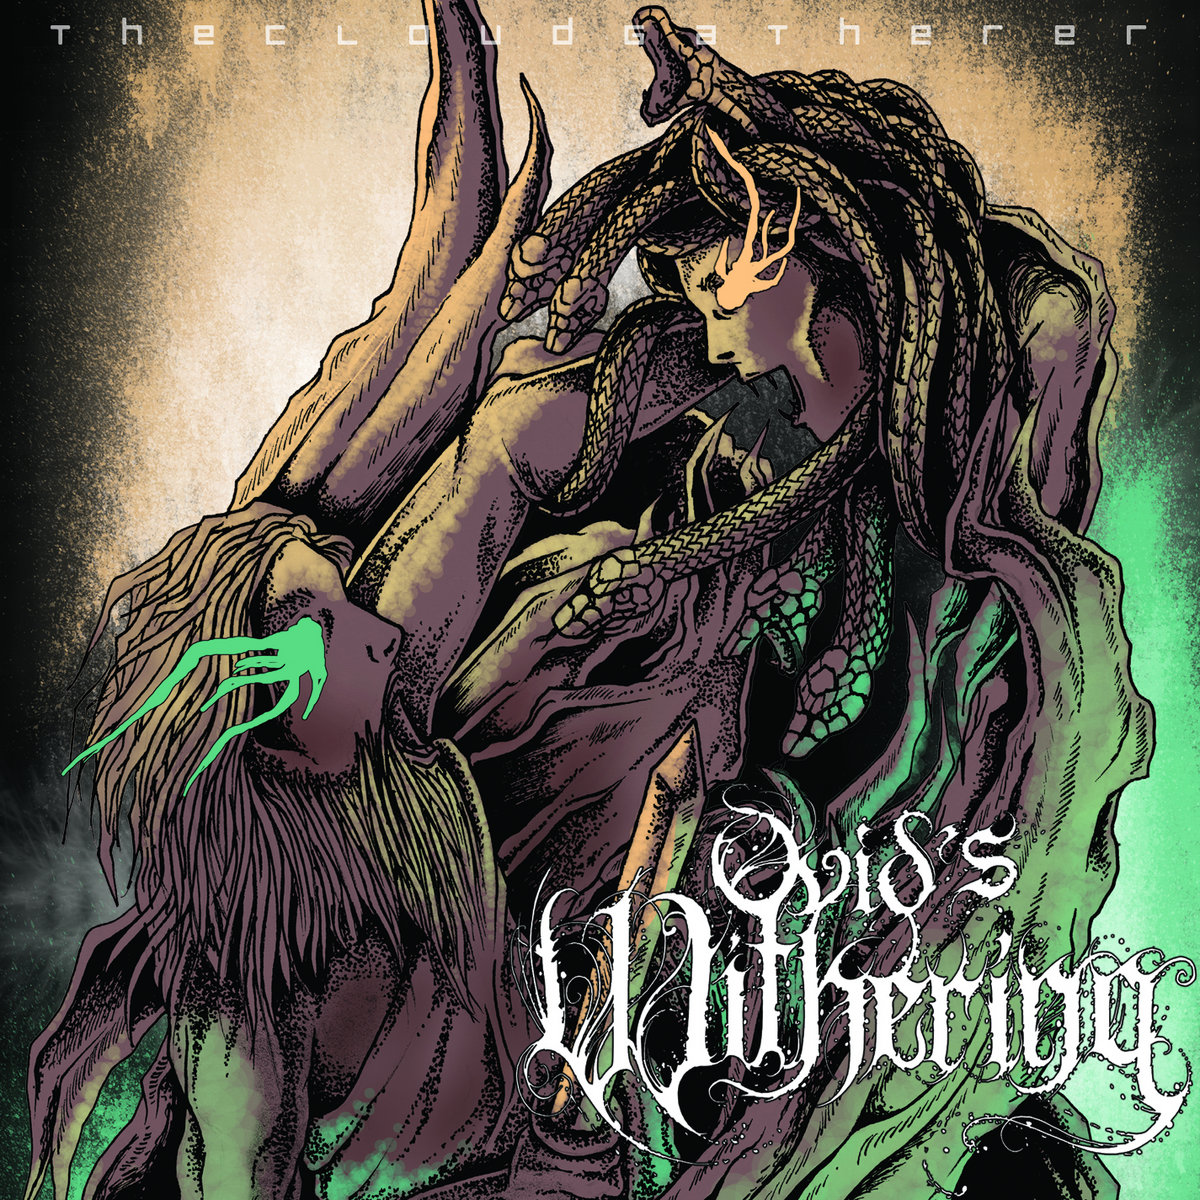 ovids withering